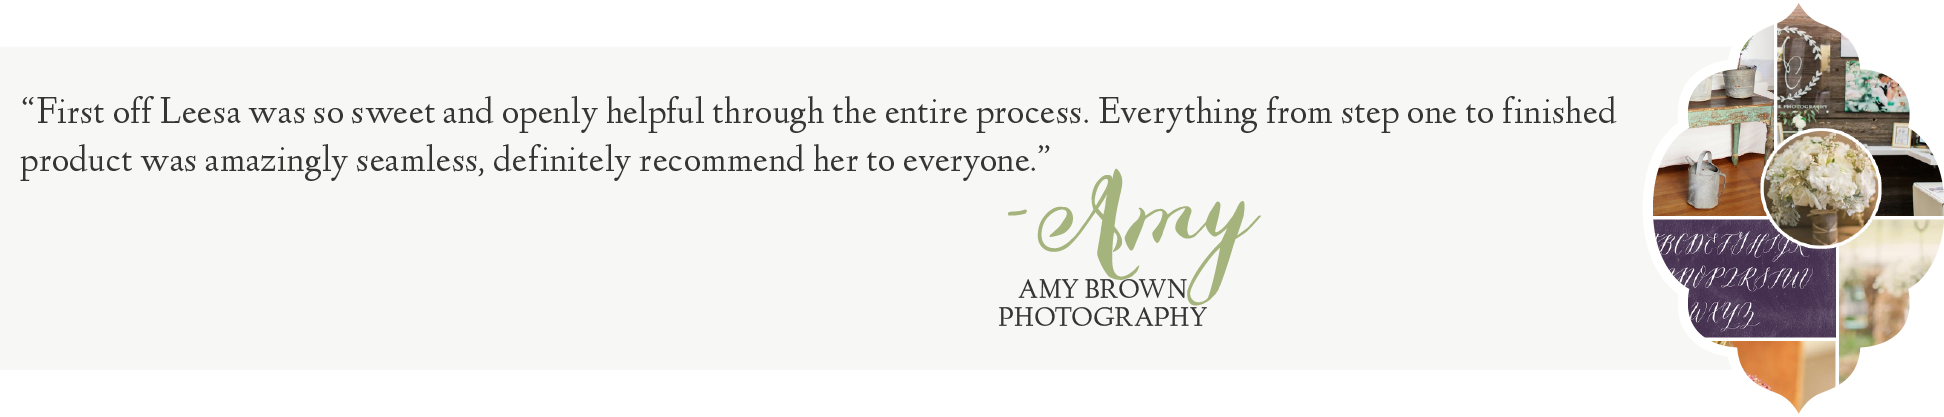 Leesa Dykstra Designs - Review Amy Brown Photography